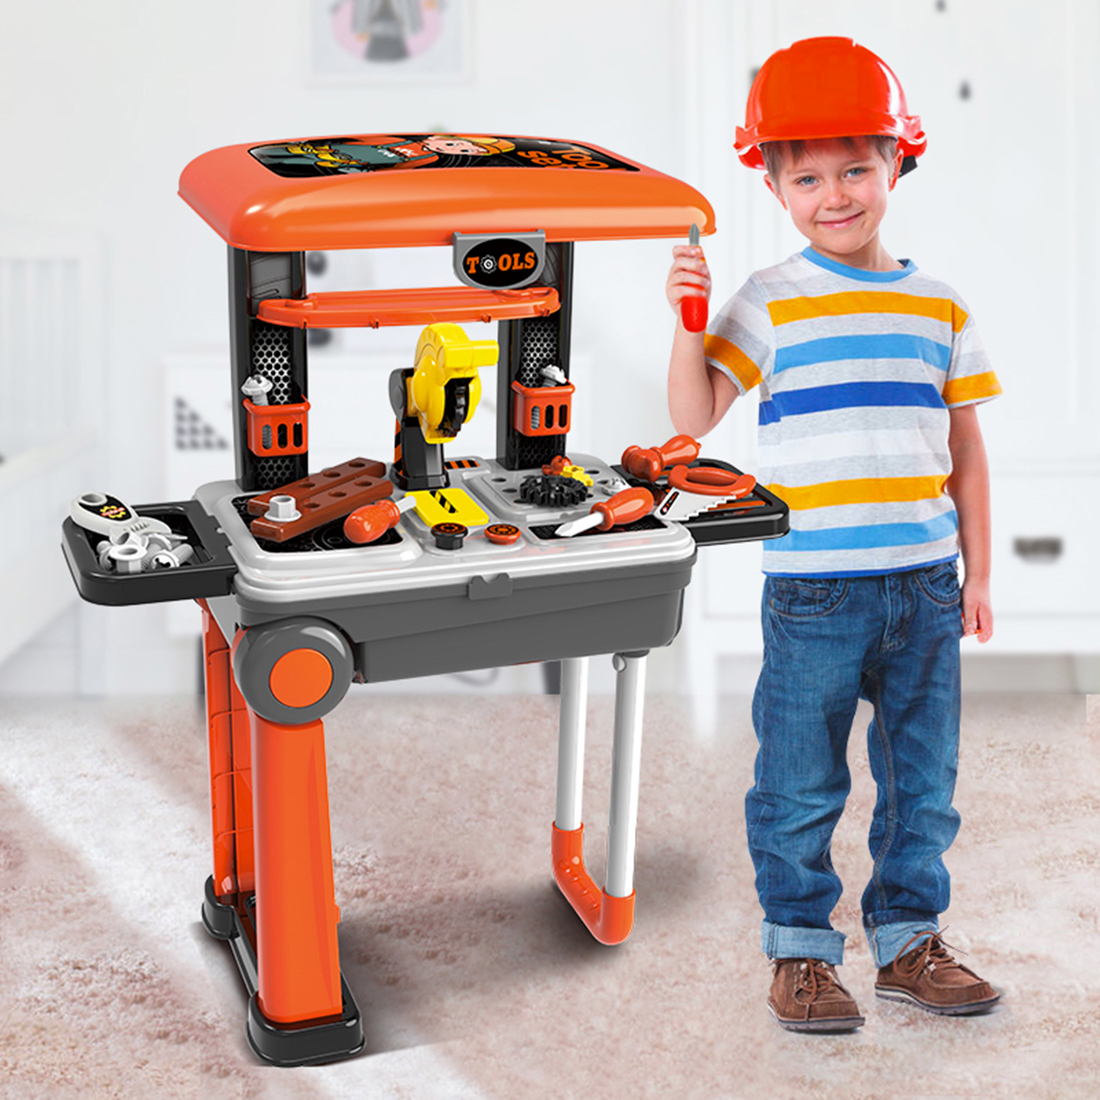 Surwish Children Repair Tool Toys Set ABS Workshop Playset Kids Parents Interactive Educational Gift Toy-Orange